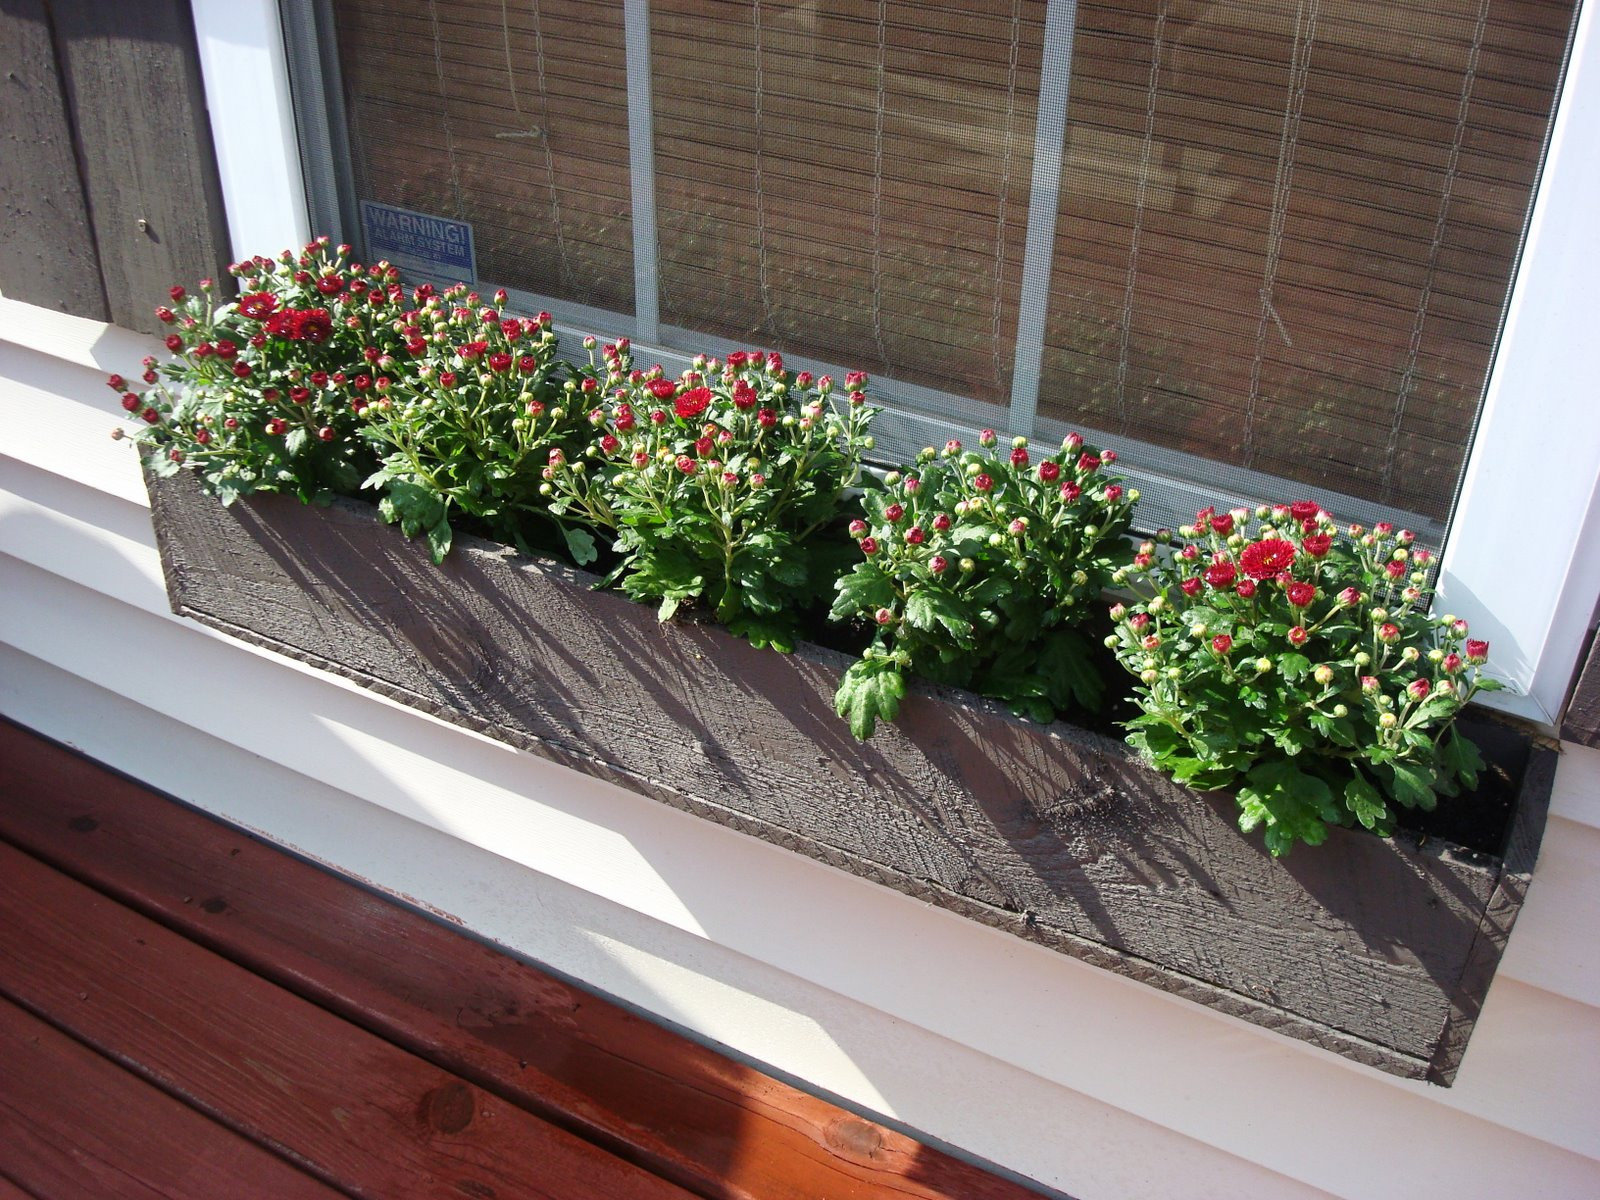 Best ideas about Window Flower Boxes DIY . Save or Pin 12 Gorgeous DIY Window Box Planters Now.